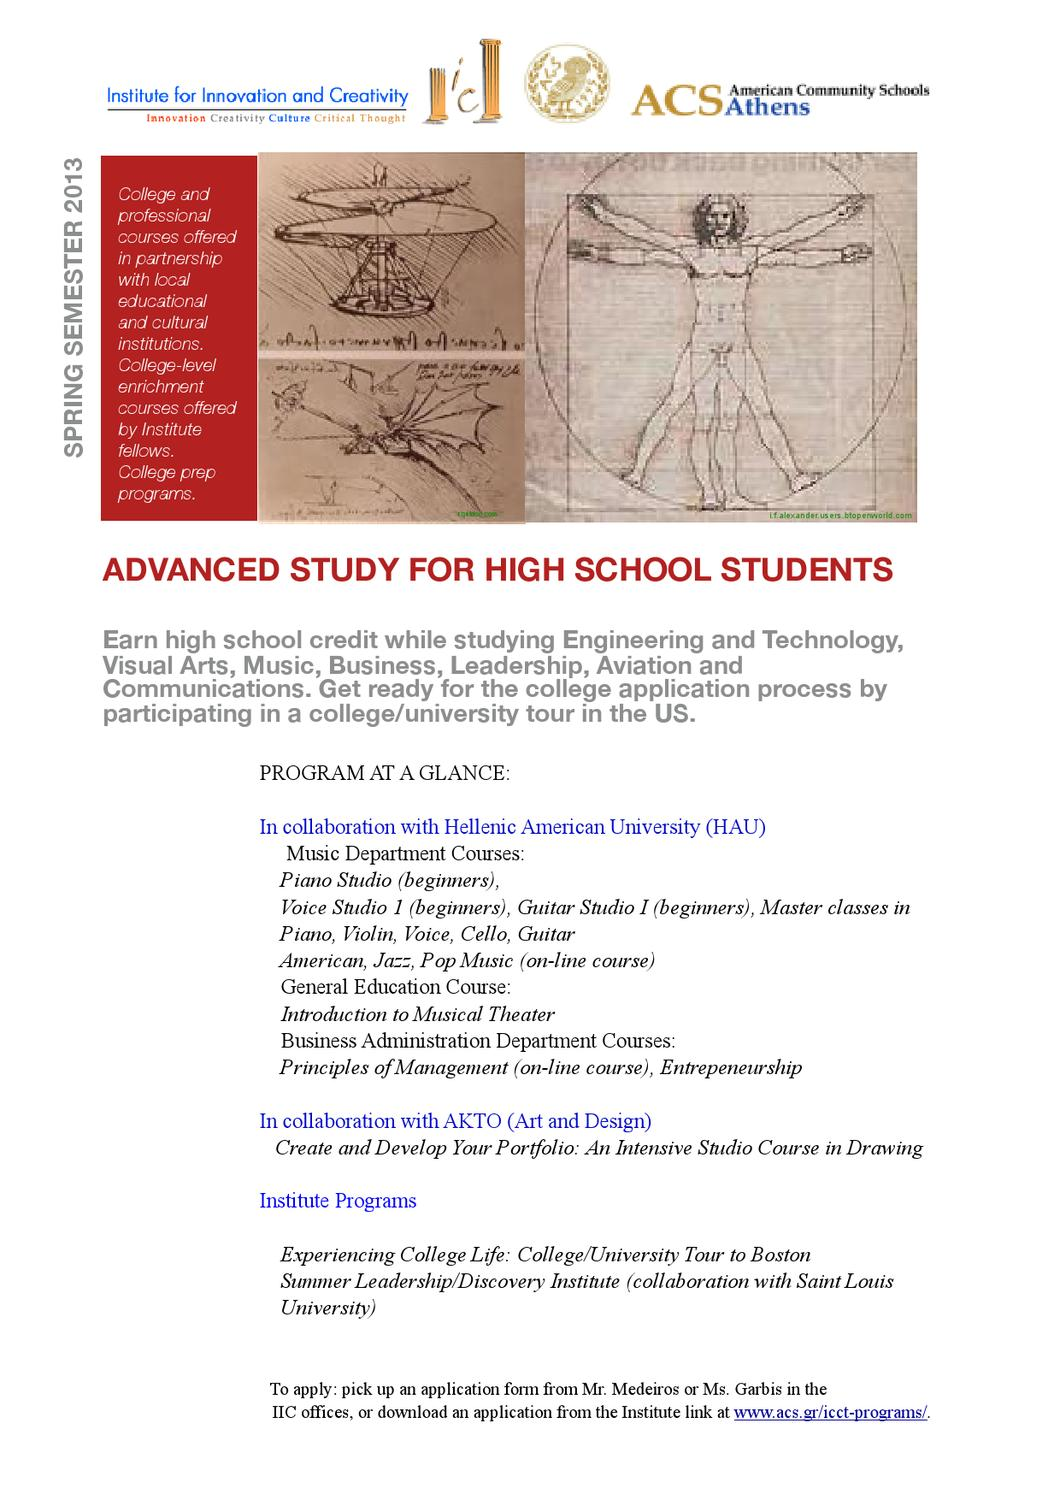 IIC Advanced Study for High School Students, Spring 2013 by